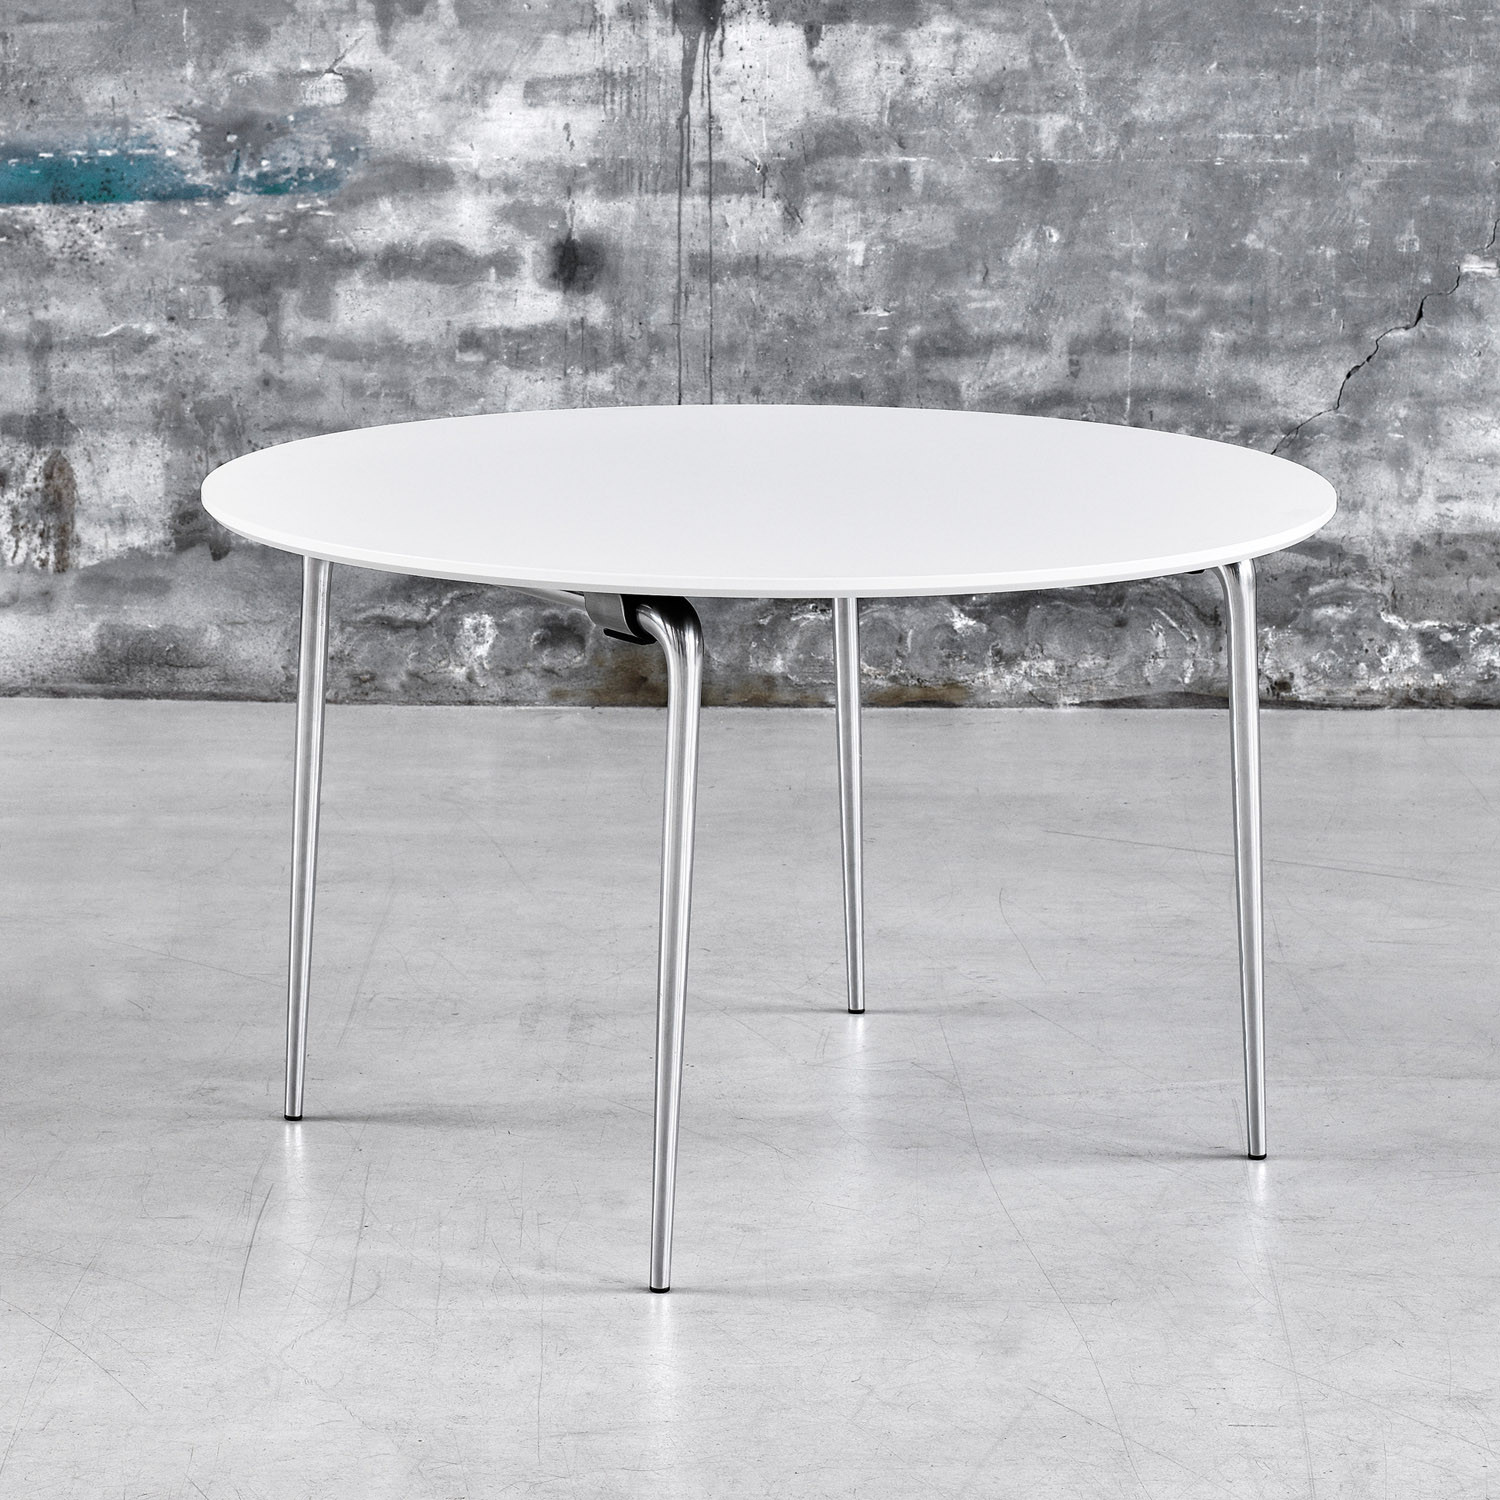 Circular Day Folding Table